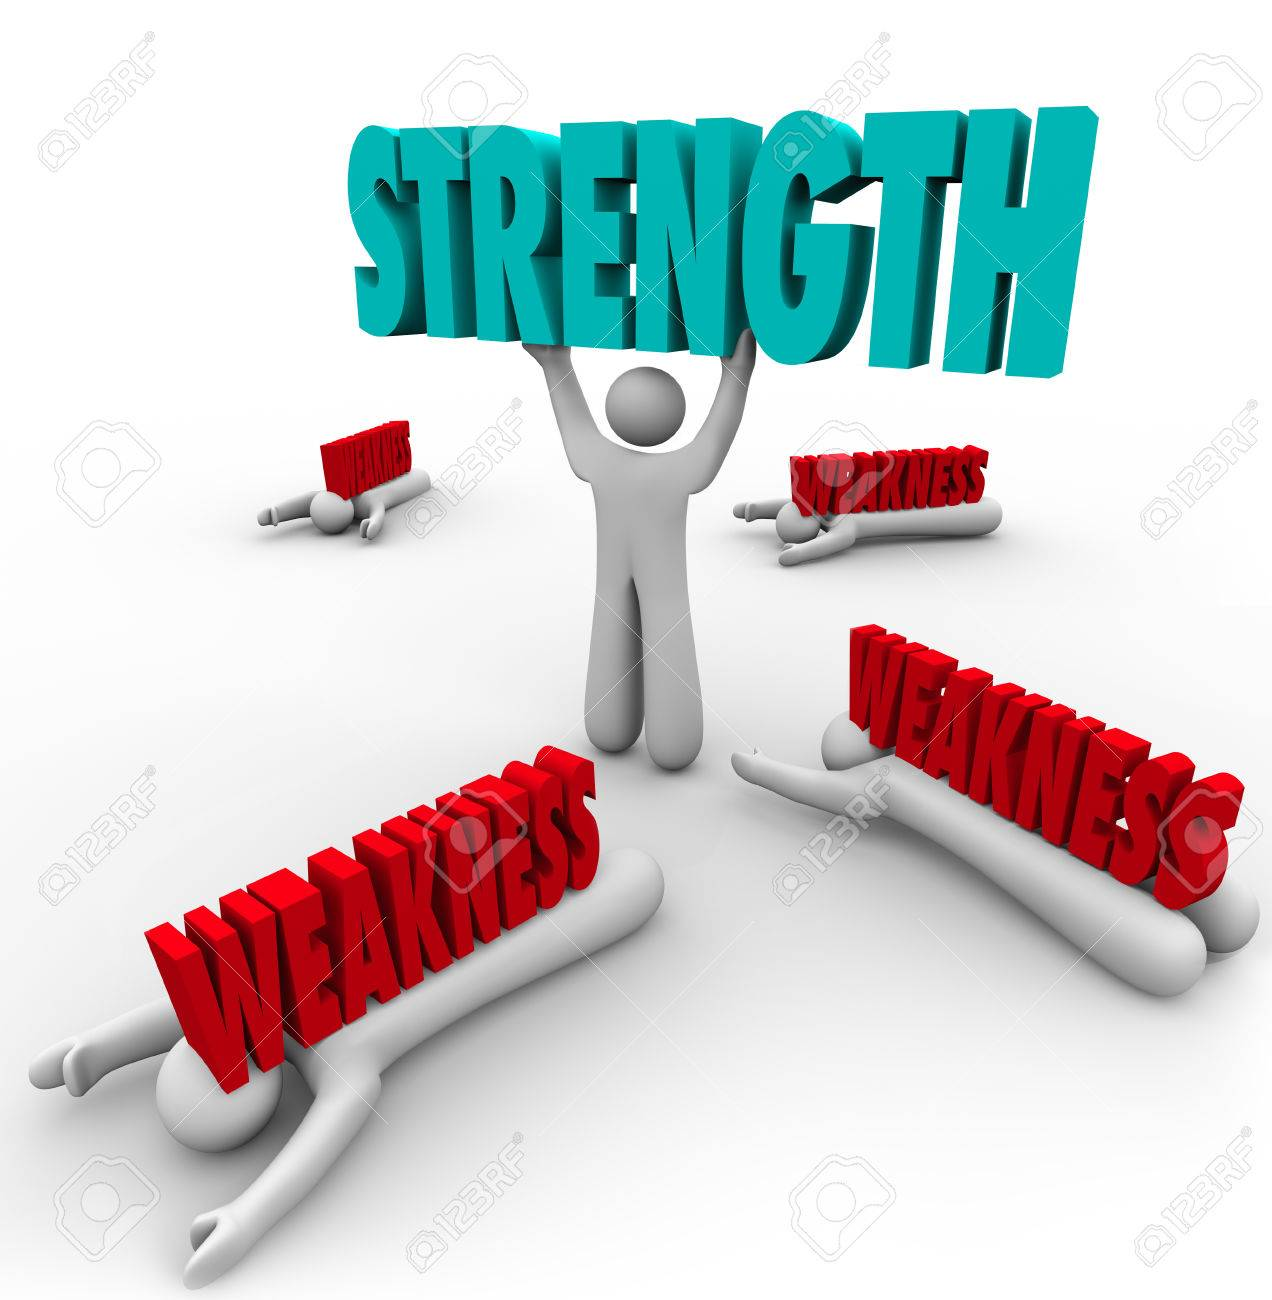 strength word lifted by a strong or skilled person while the stock photo strength word lifted by a strong or skilled person while the competition is crushed by weakness or lack of abilties to compete to win